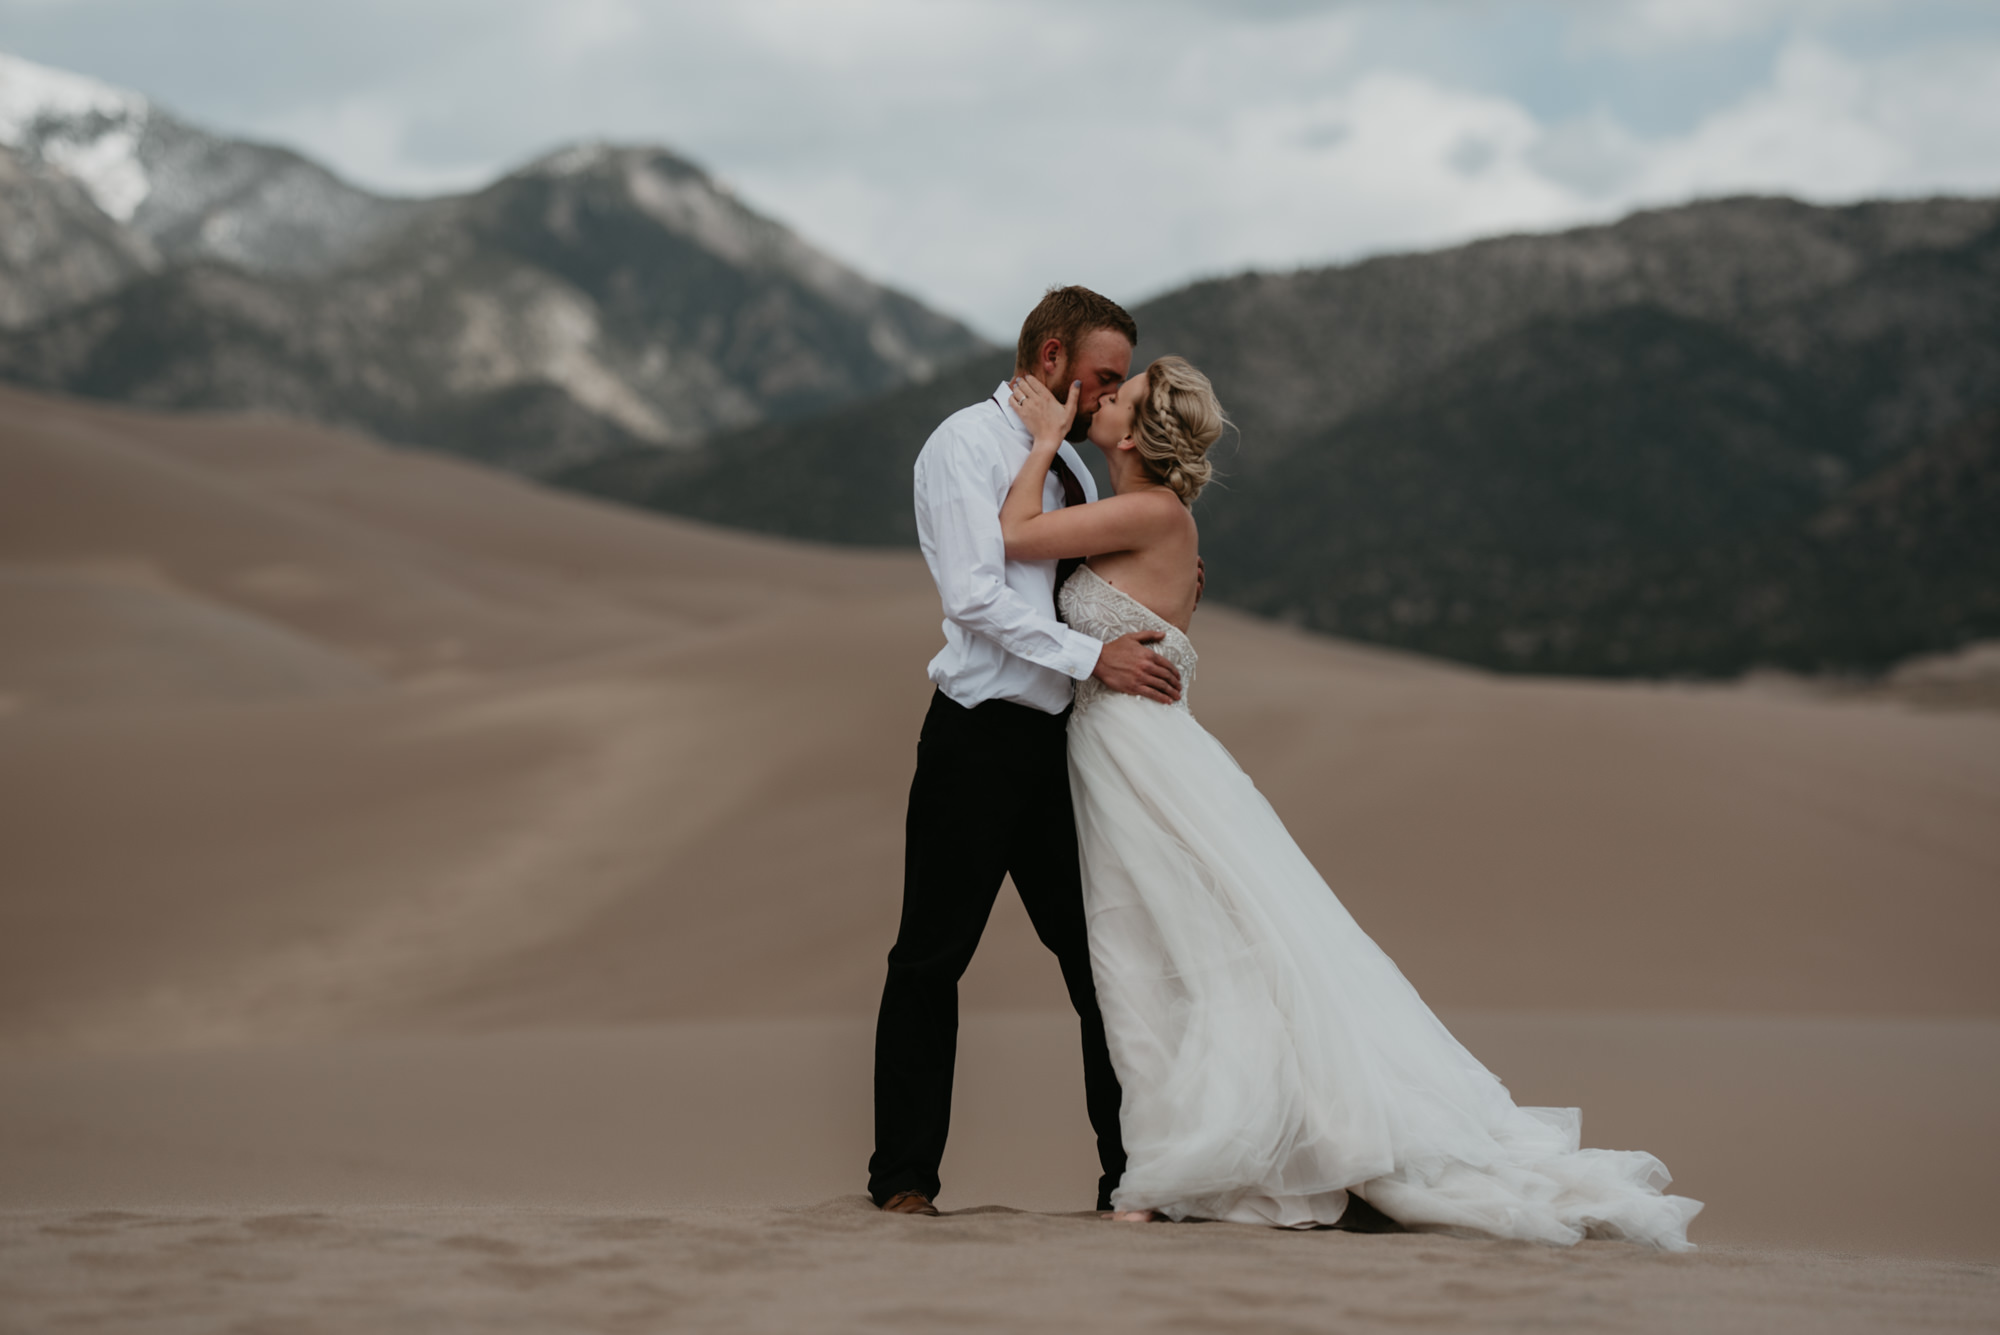 The bride and groom kiss passionately in front of Colorado mountains.